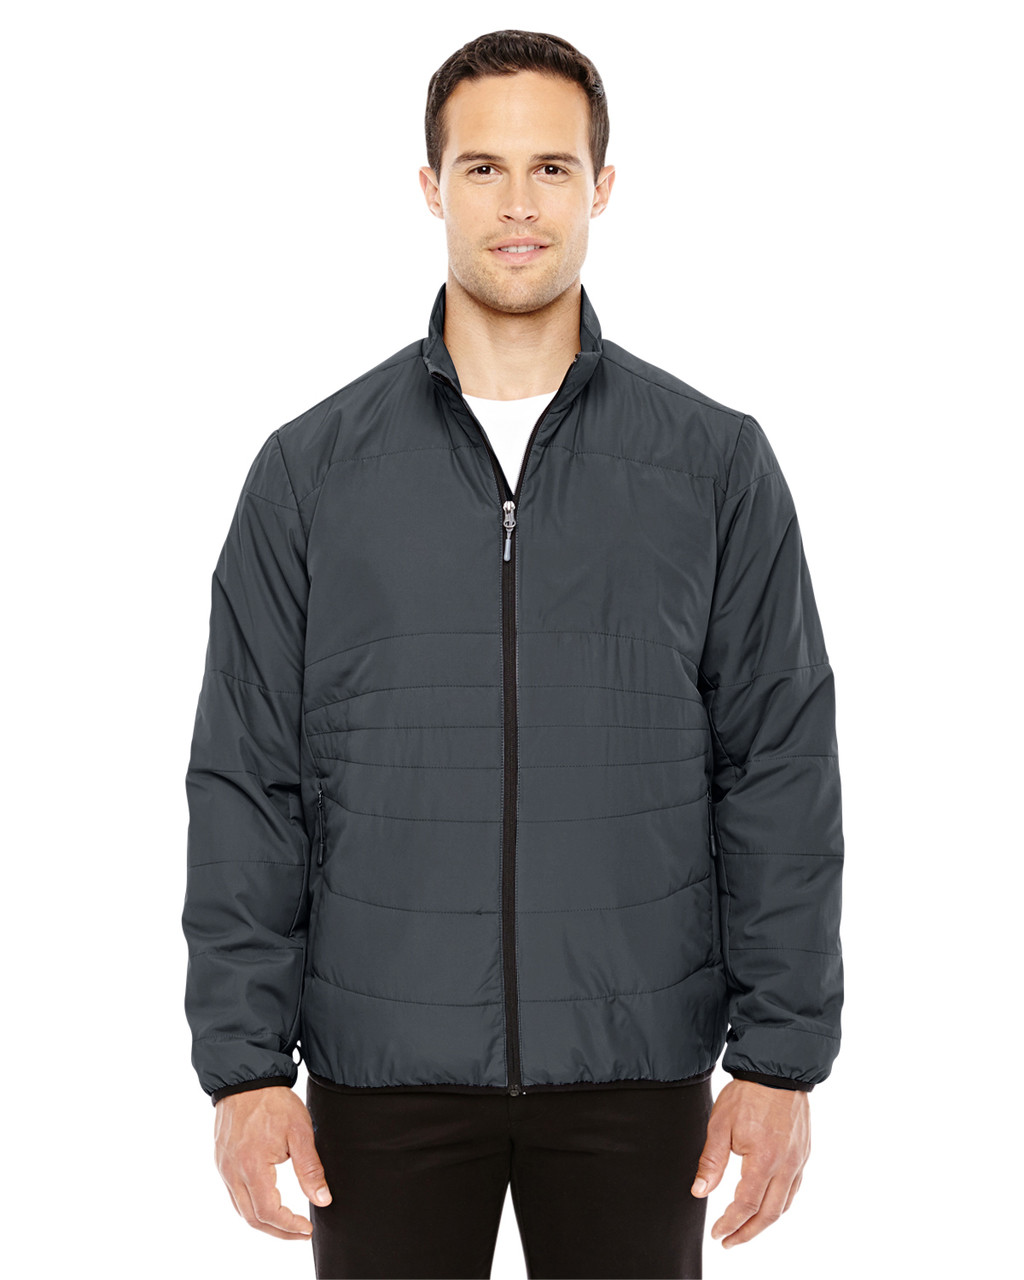 Graphite/Black -  88231 North End Men's Resolve Interactive Insulated Packable Jacket | Blankclothing.ca